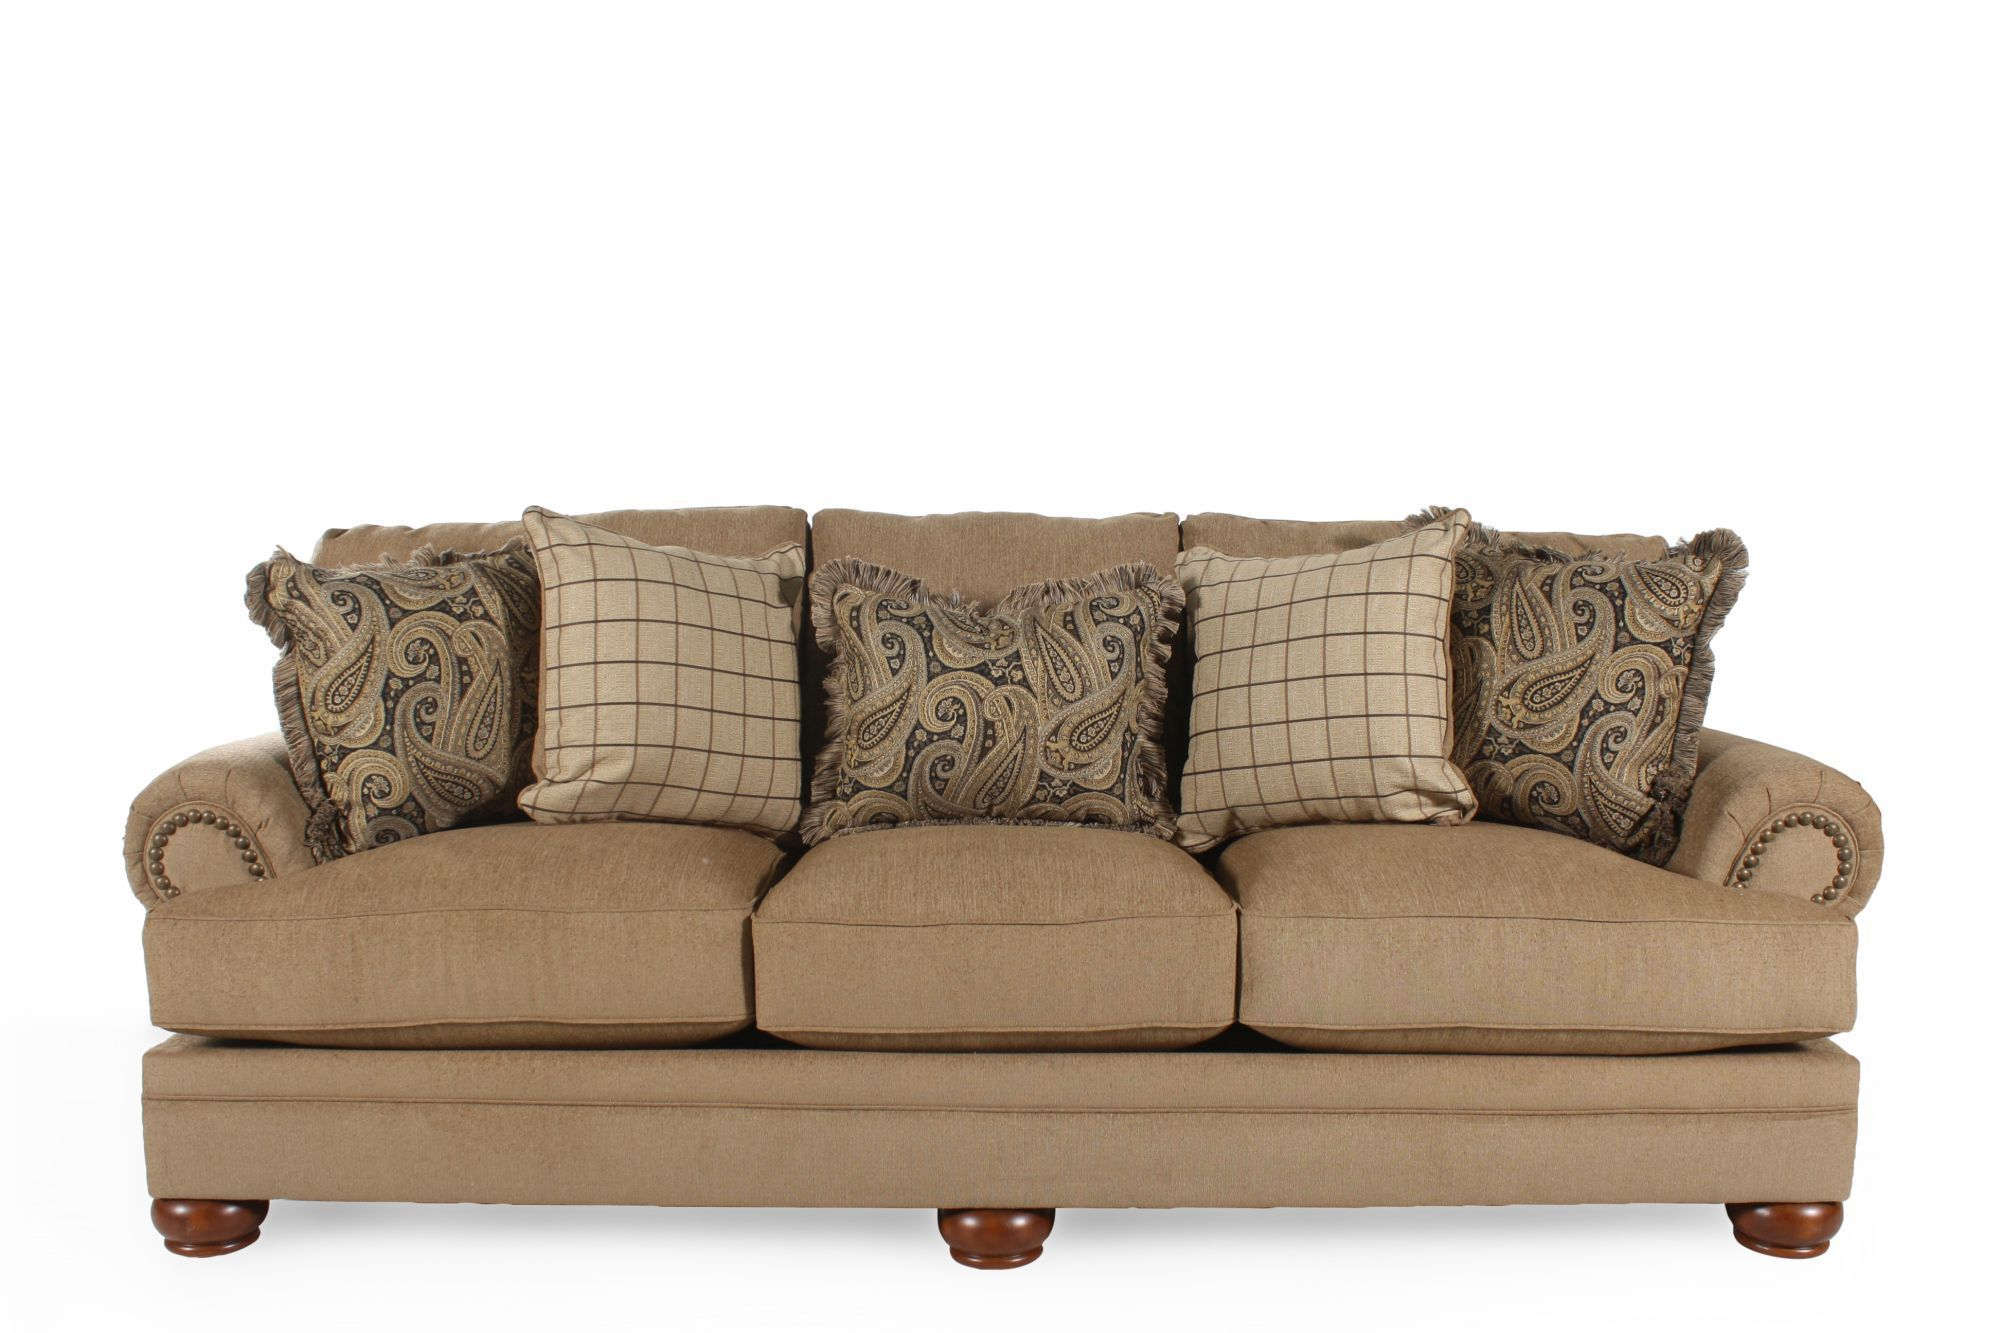 Keereel Sofa Bed furniture, Furniture near me, Couch stores